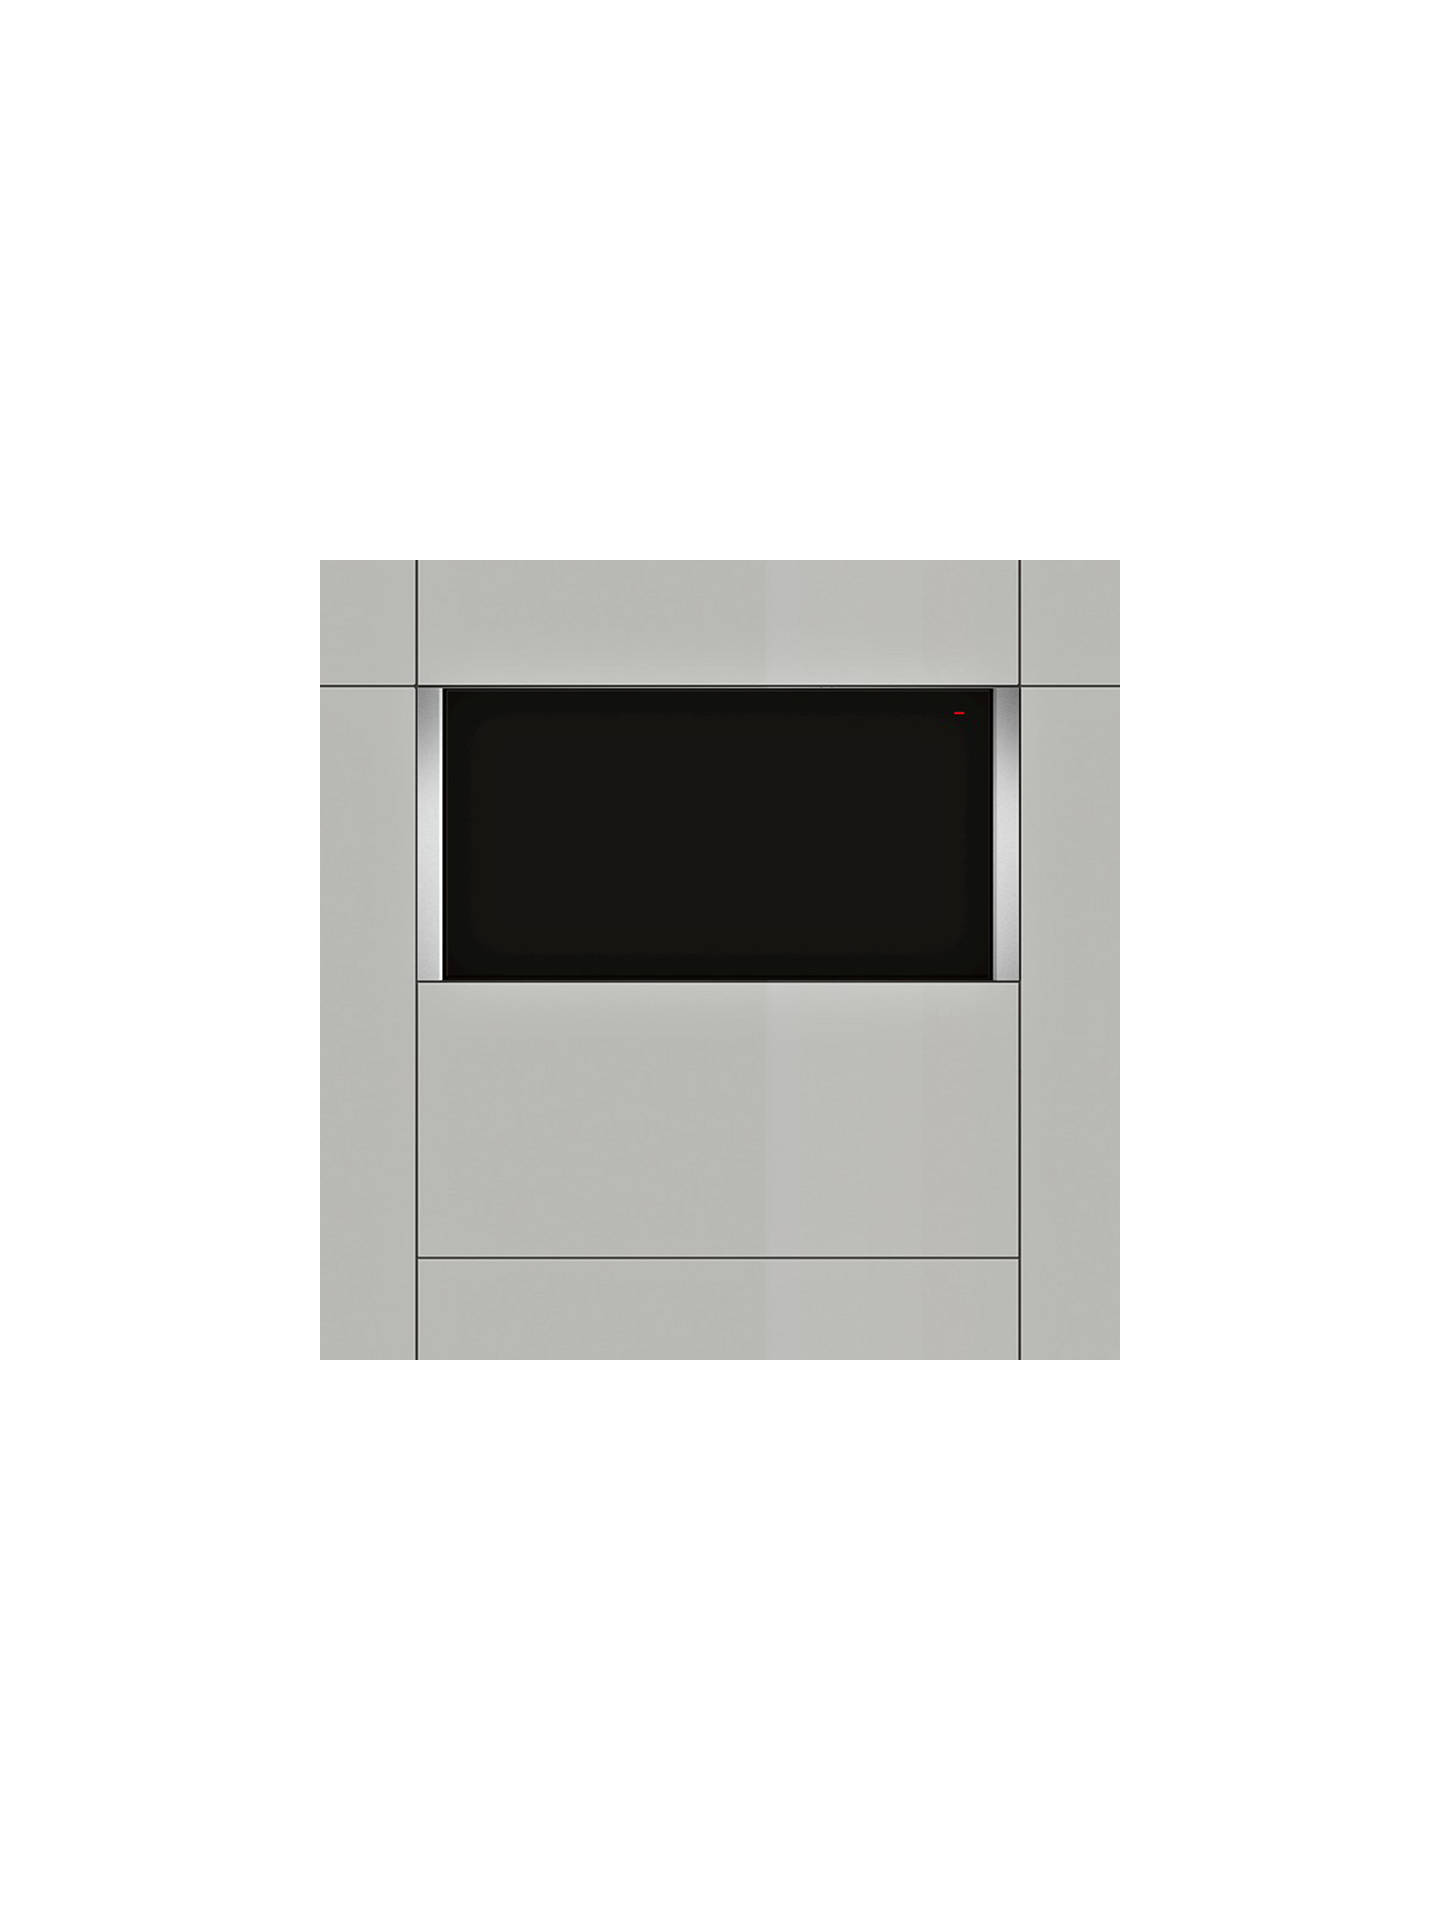 BuyNeff N17HH20N0B Warming Drawer, Stainless Steel Online at johnlewis.com